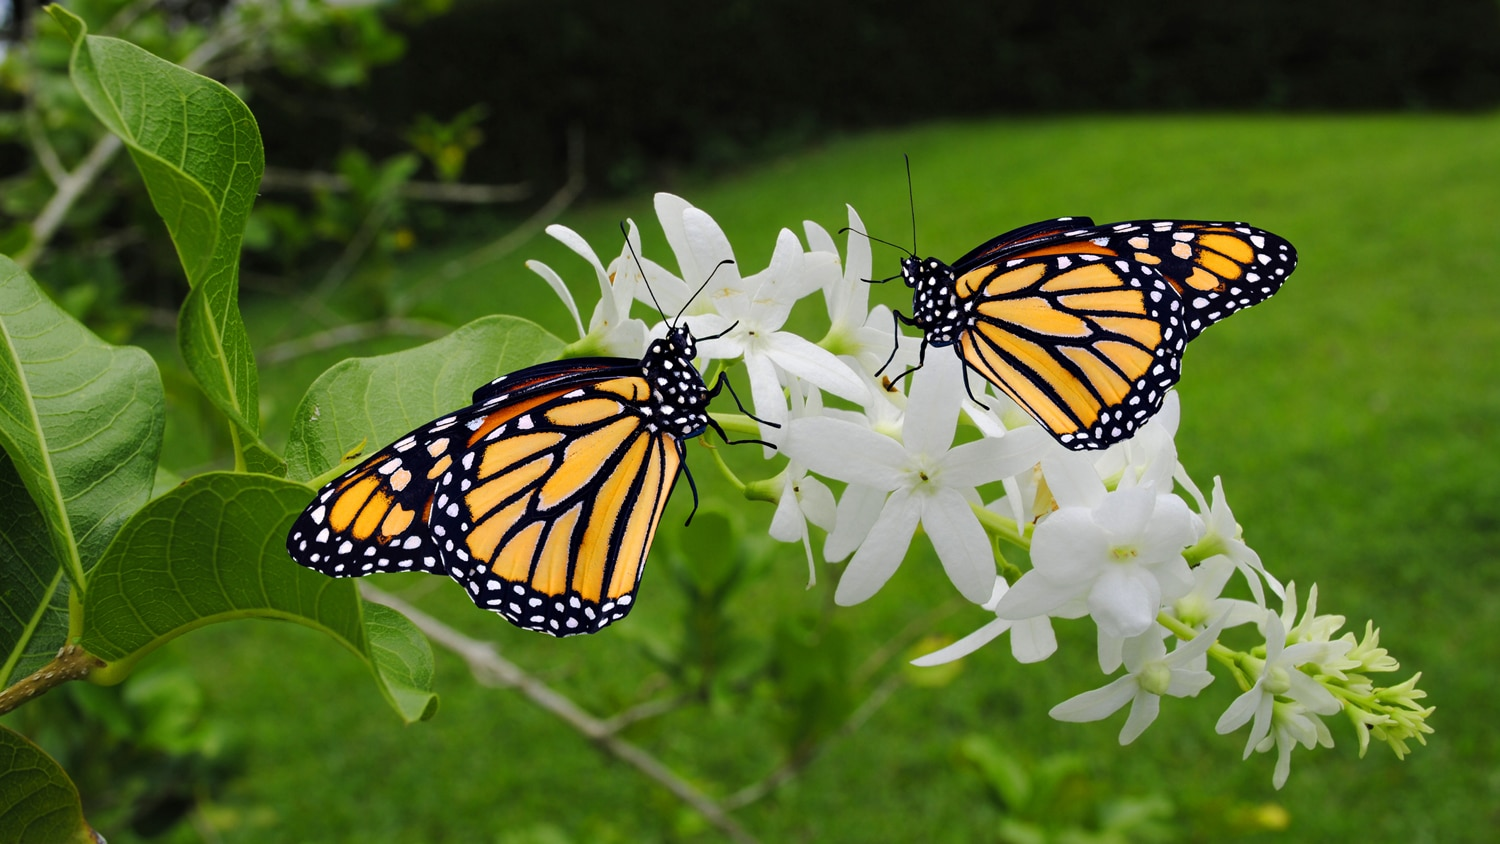 Two Monarch butterflies on a white flower